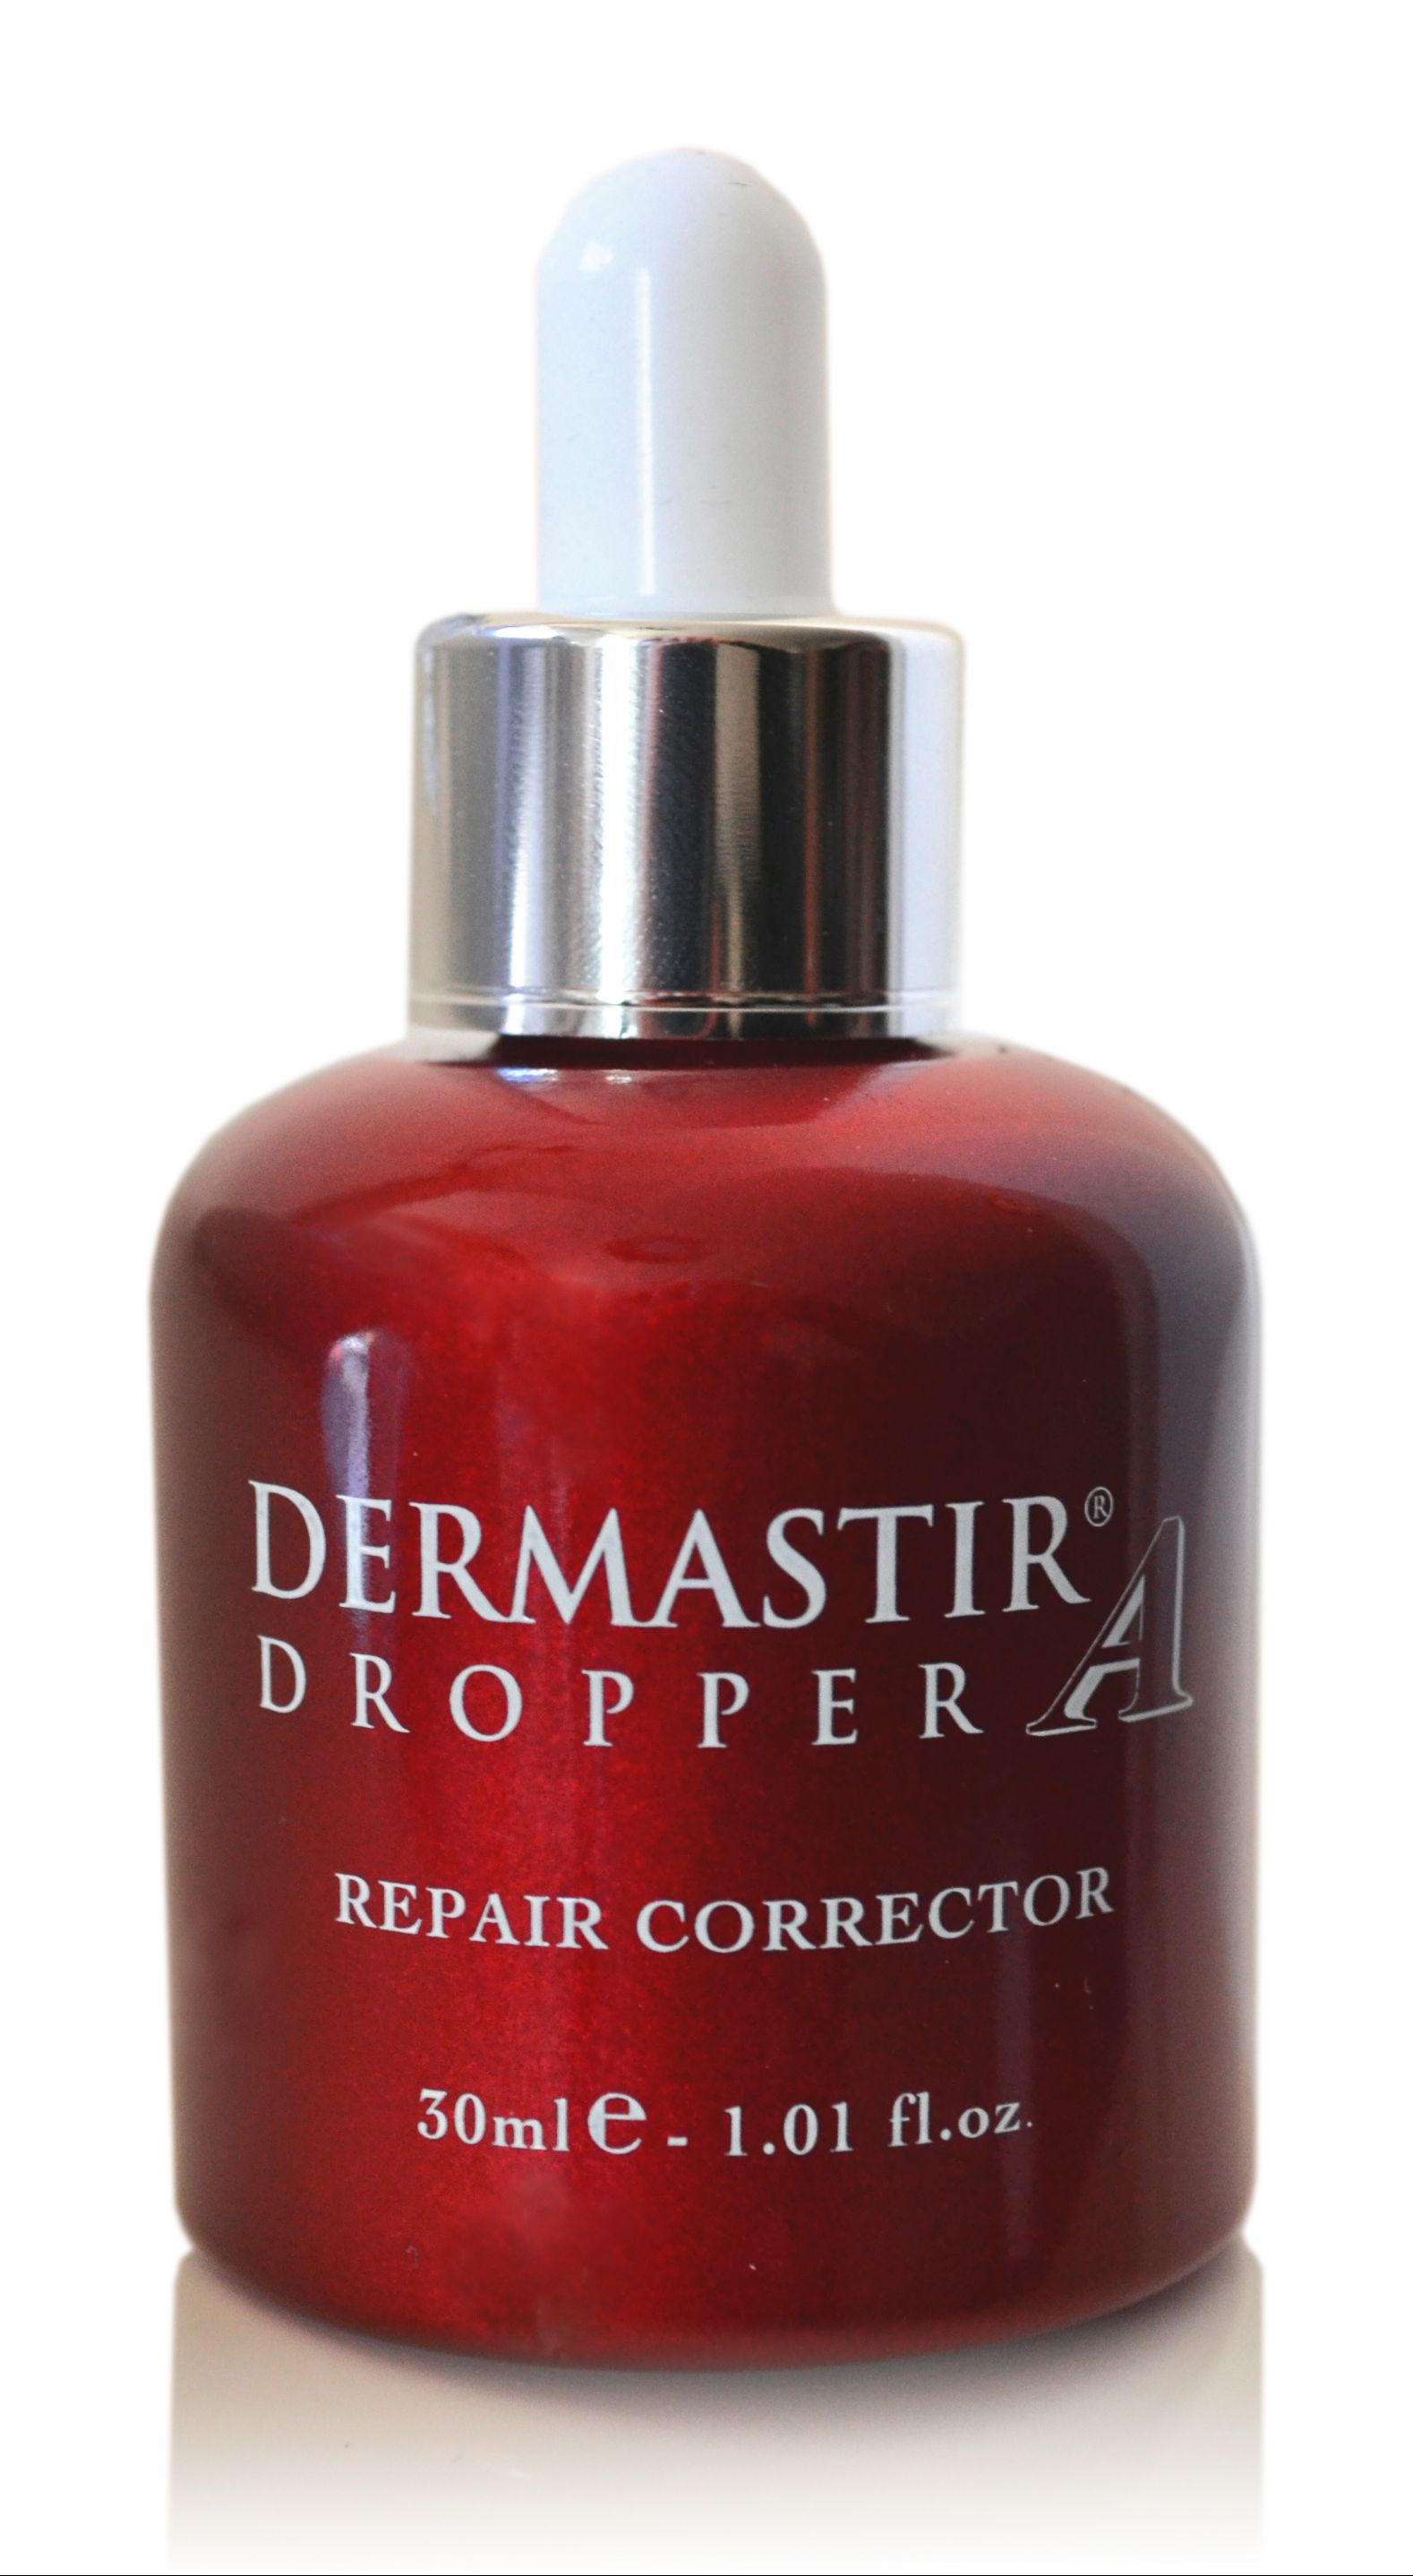 DERMASTIR DROPPER REPAIR CORRECTOR(ВОССТАНАВЛИВАЮЩАЯ СЫВОРОТКА)